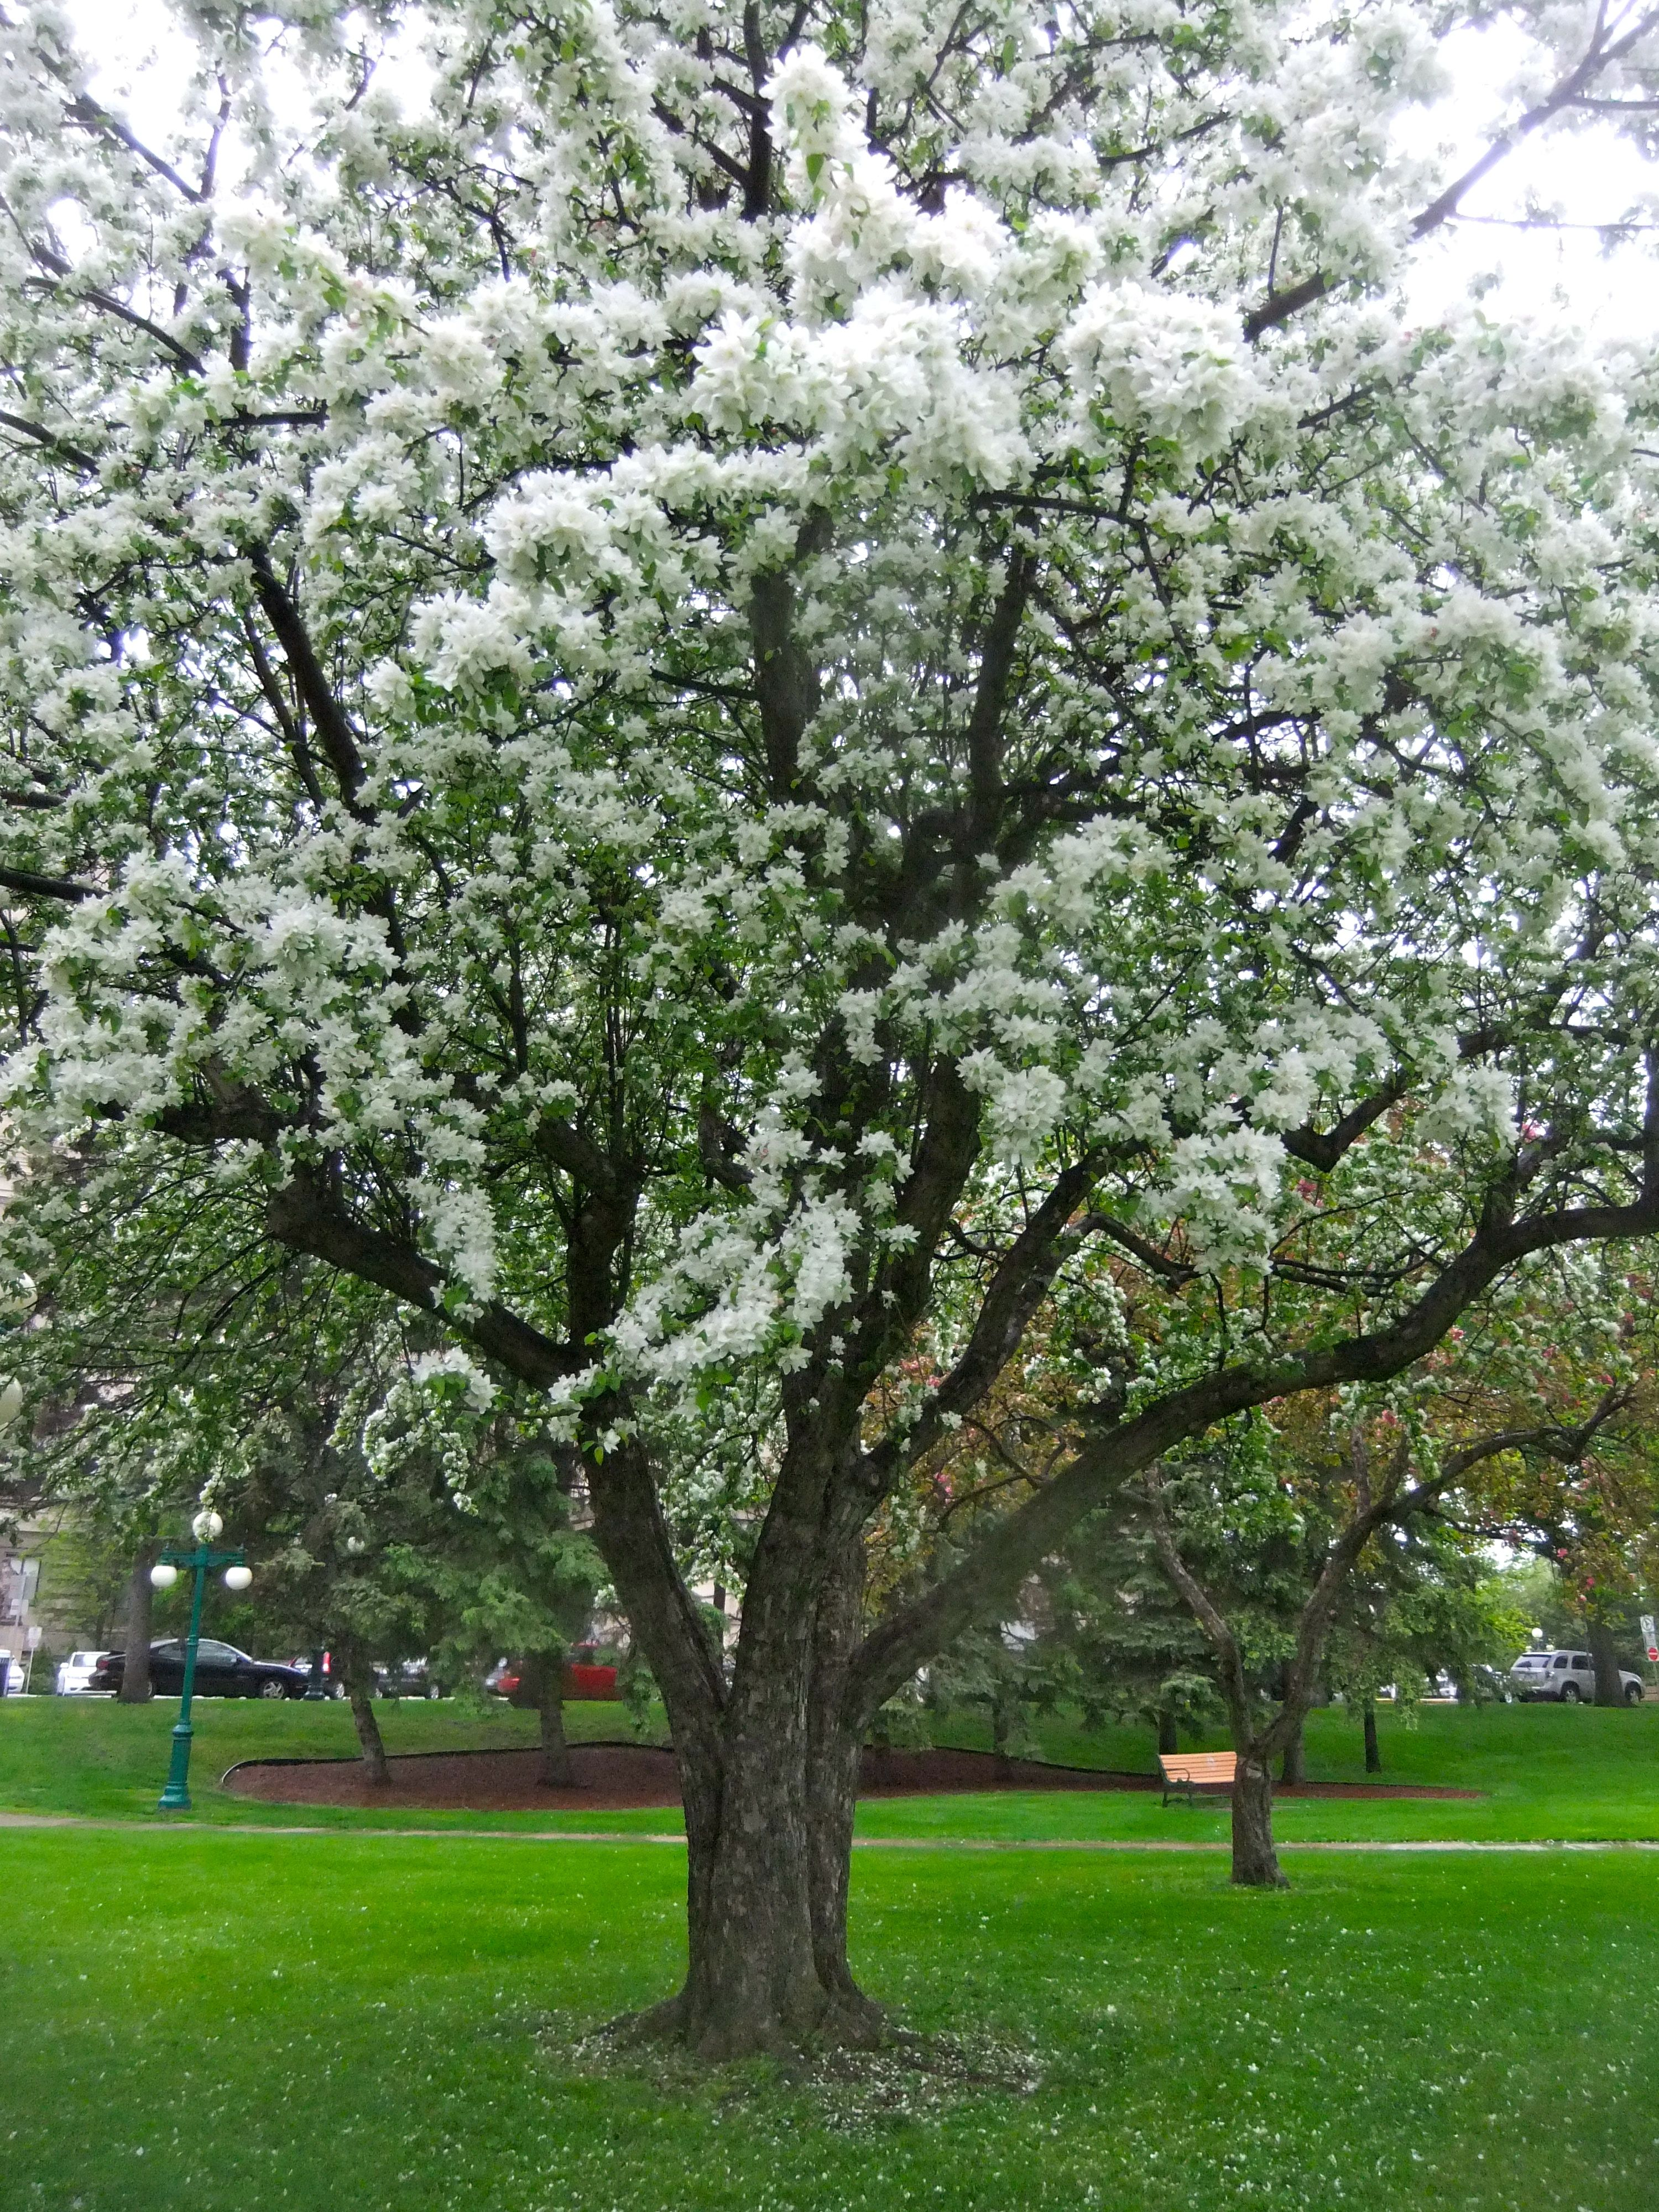 Manitoba Spring Flowering Crabapple Treesattracts Cabbage White